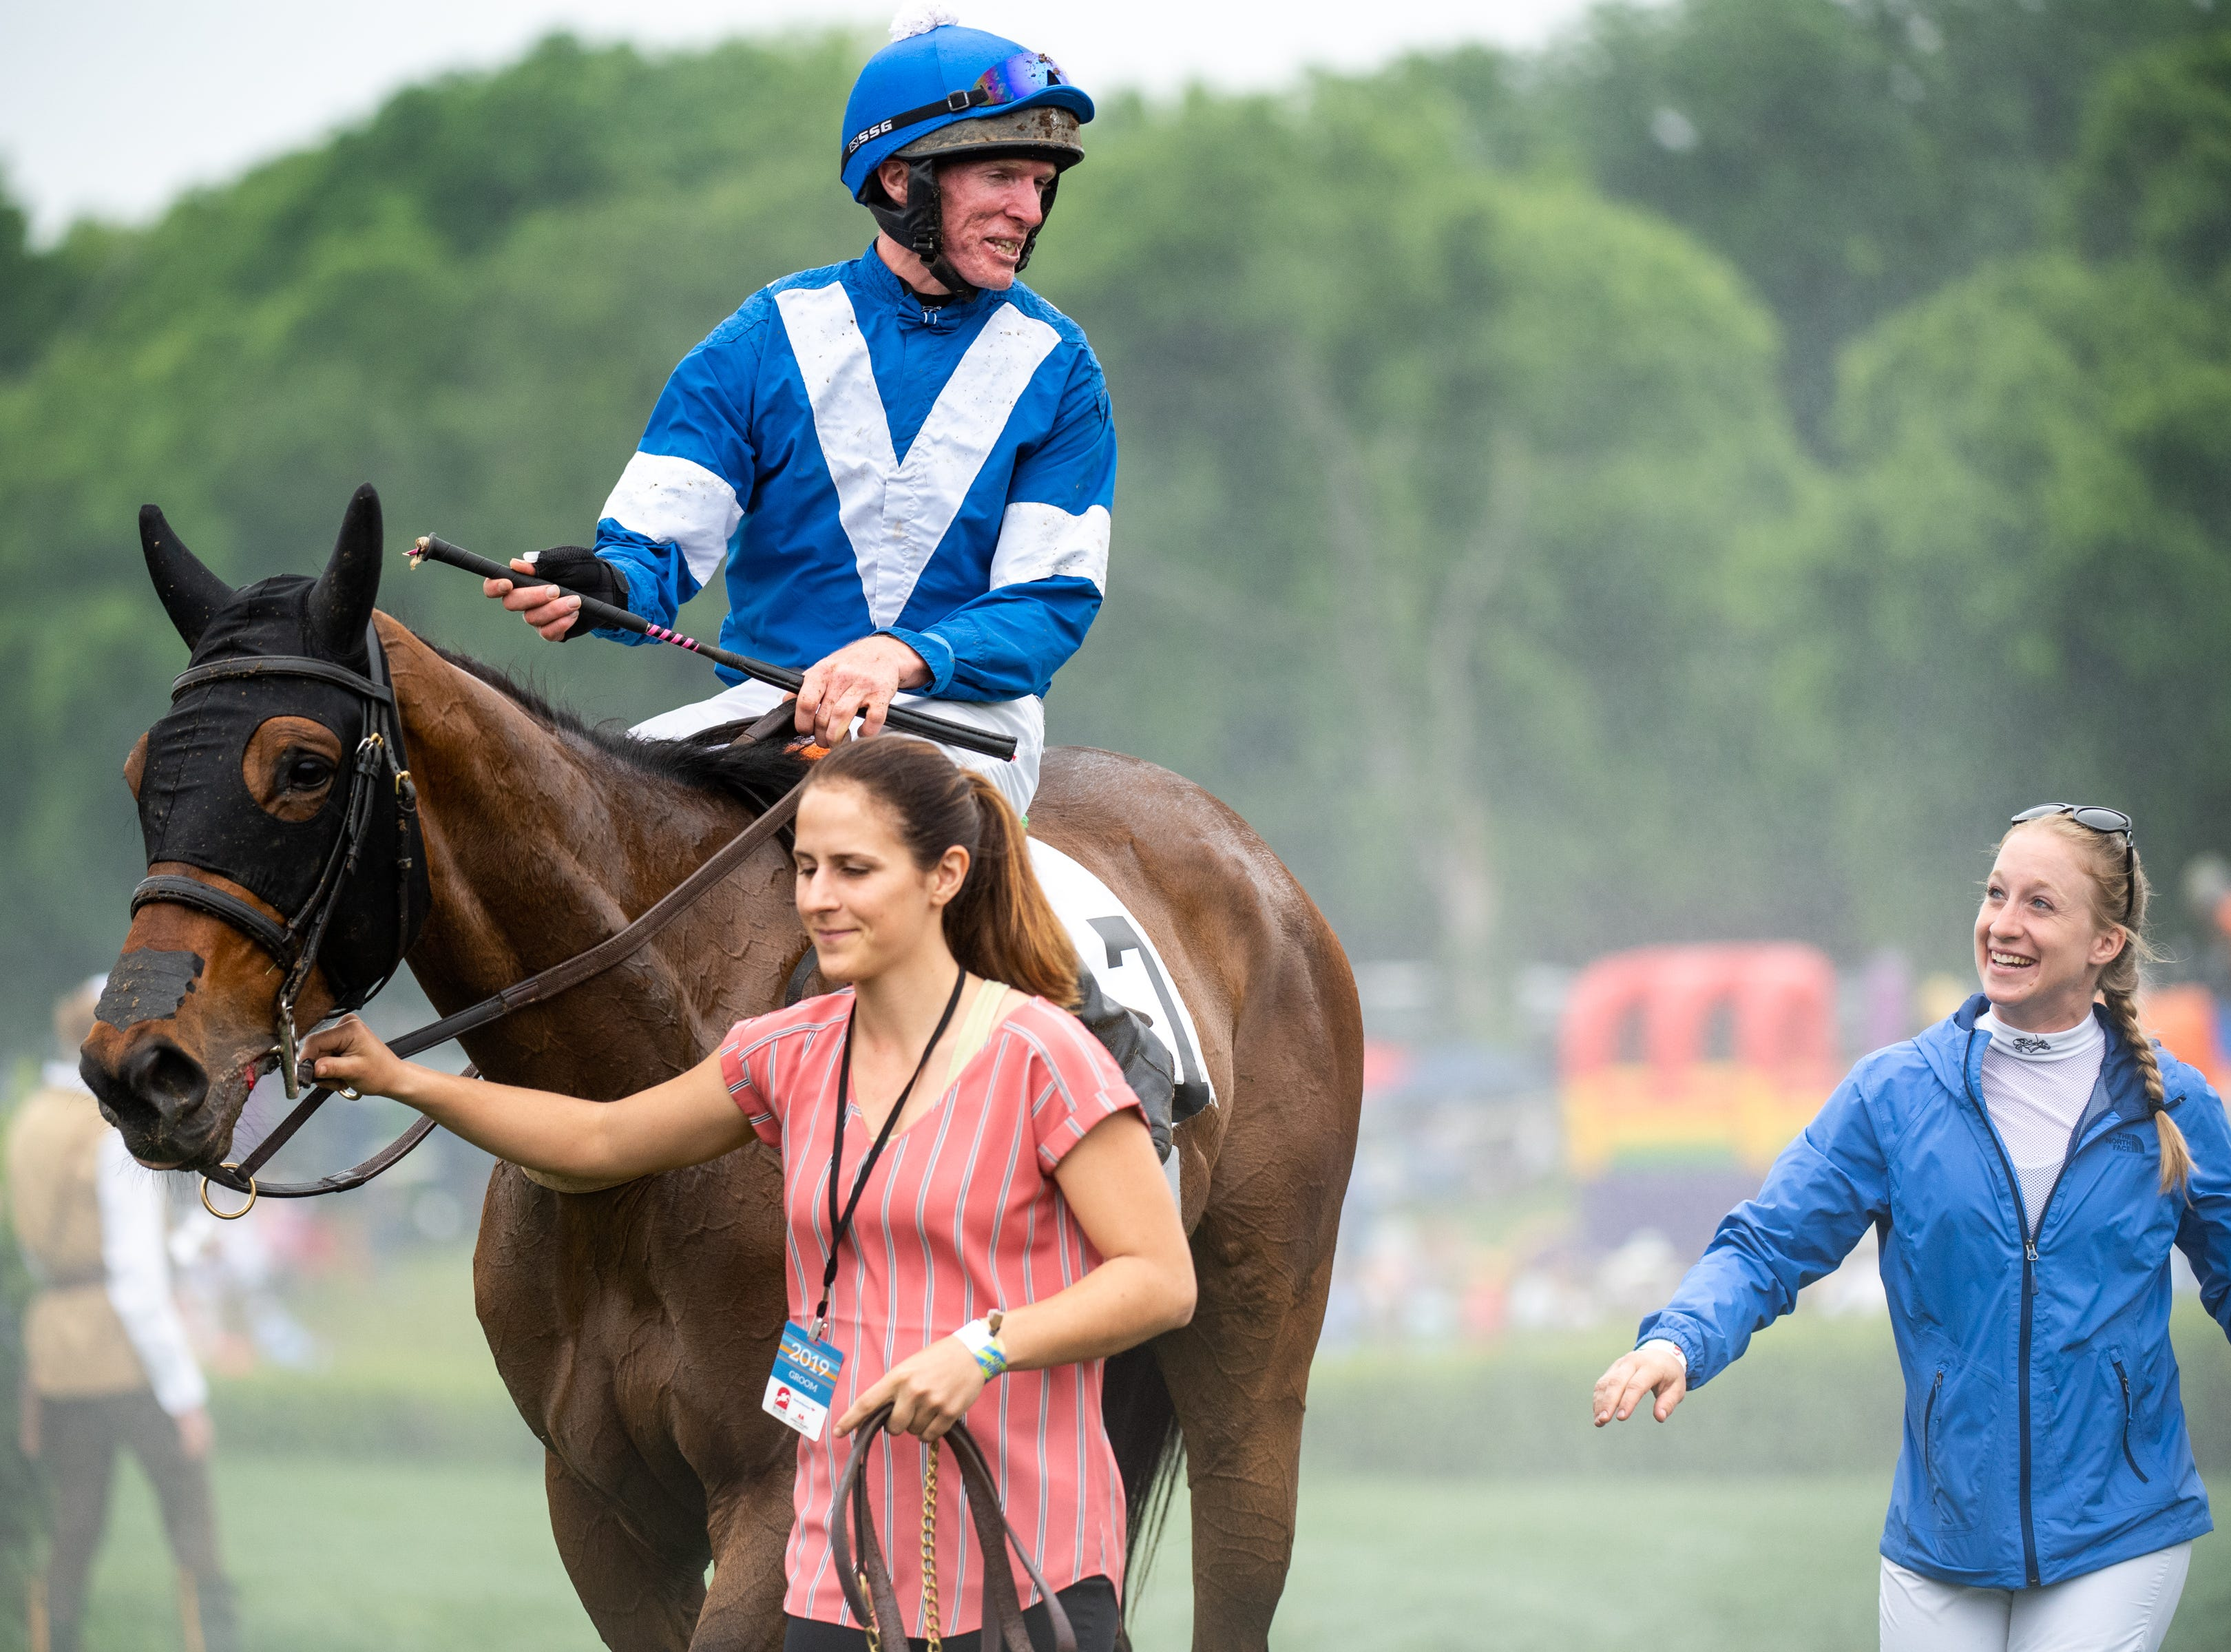 Gerard Galligan smiles on thoroughbred horse, Sportswear, after winning the first race of the Iroquois Steeplechase at Percy Warner Park Saturday, May 11, 2019, in Nashville, Tenn.